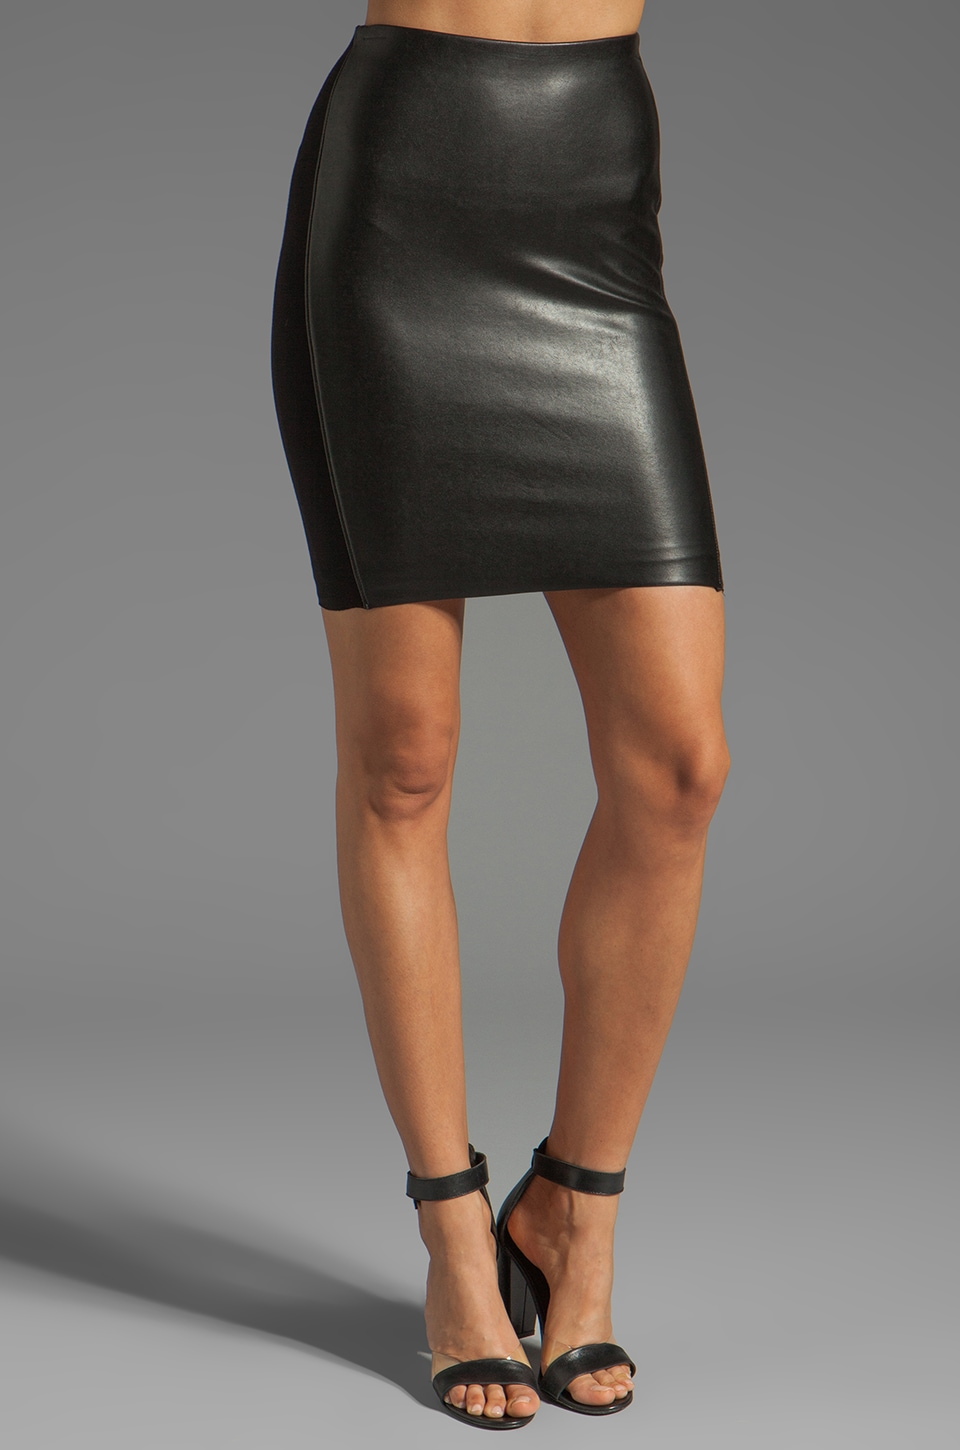 Bailey 44 Speedway Skirt in Black